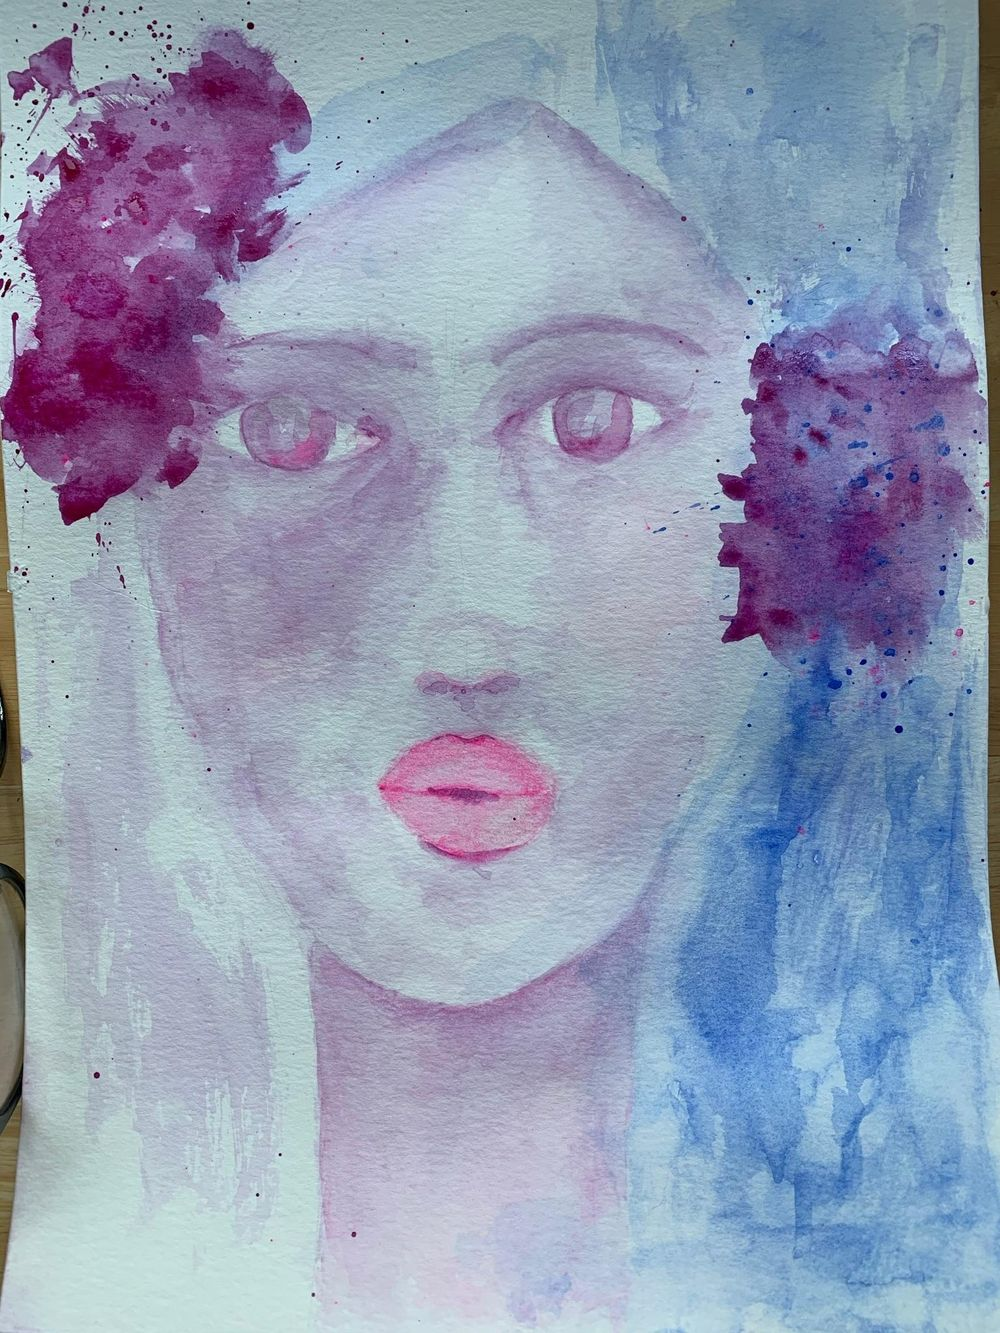 Whimsical Face in watercolour - image 3 - student project